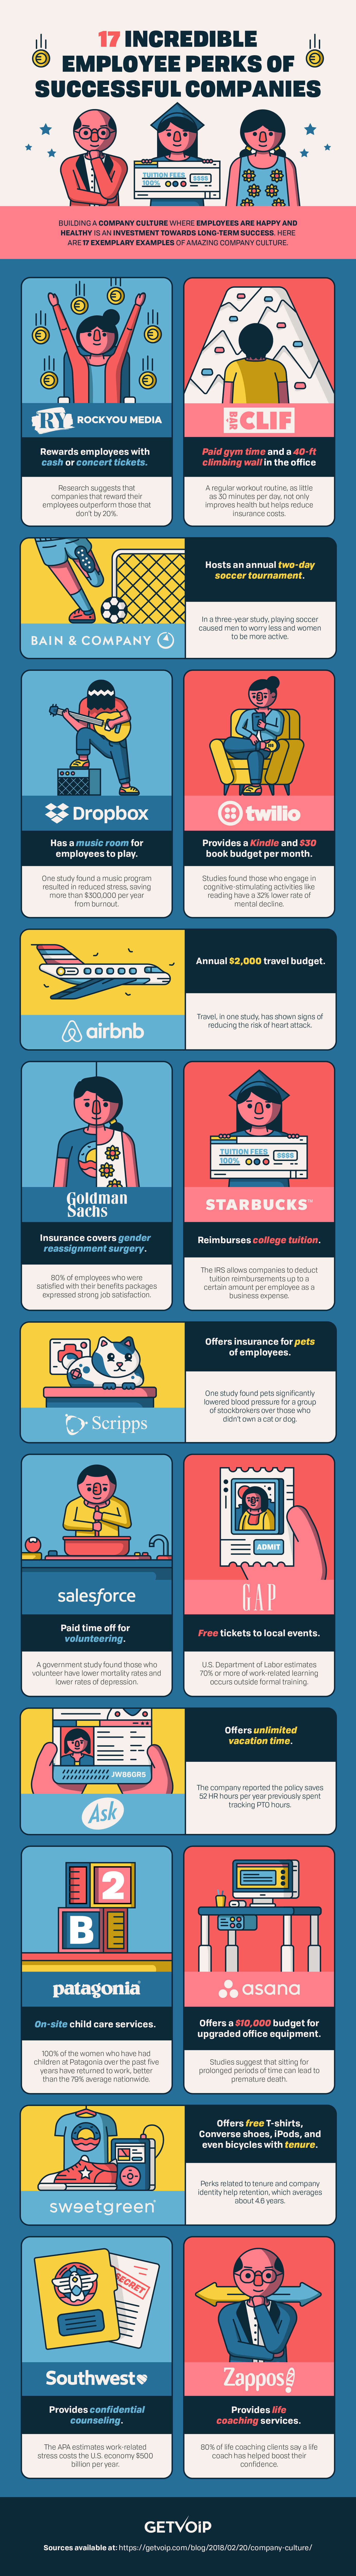 17 Unusual Employee Perks from Successful Companies (INFOGRAPHIC)